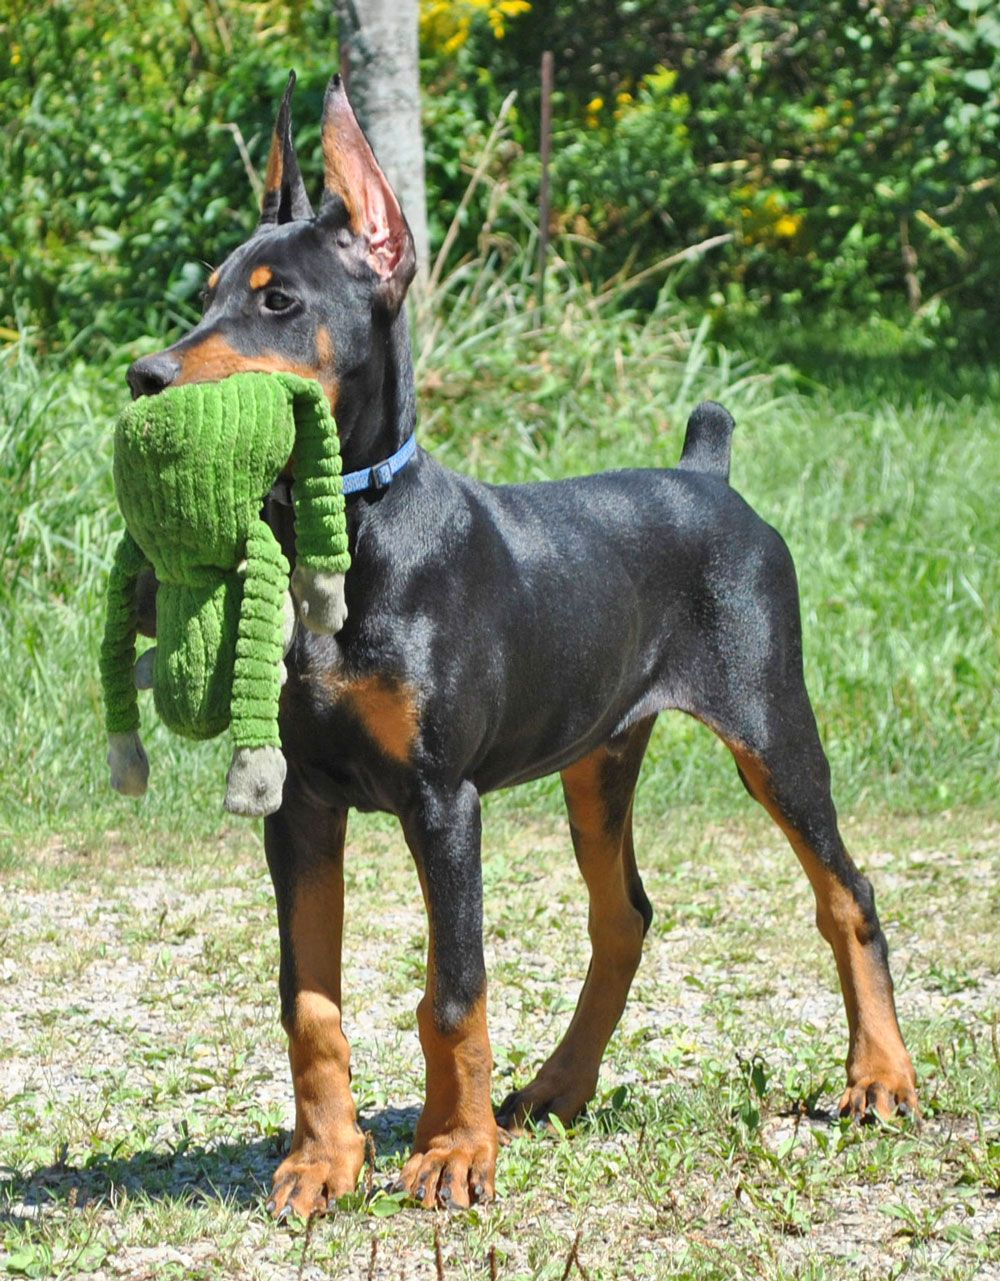 Doberman Puppy Cropped Doberman Puppy Doberman Pinscher Dog